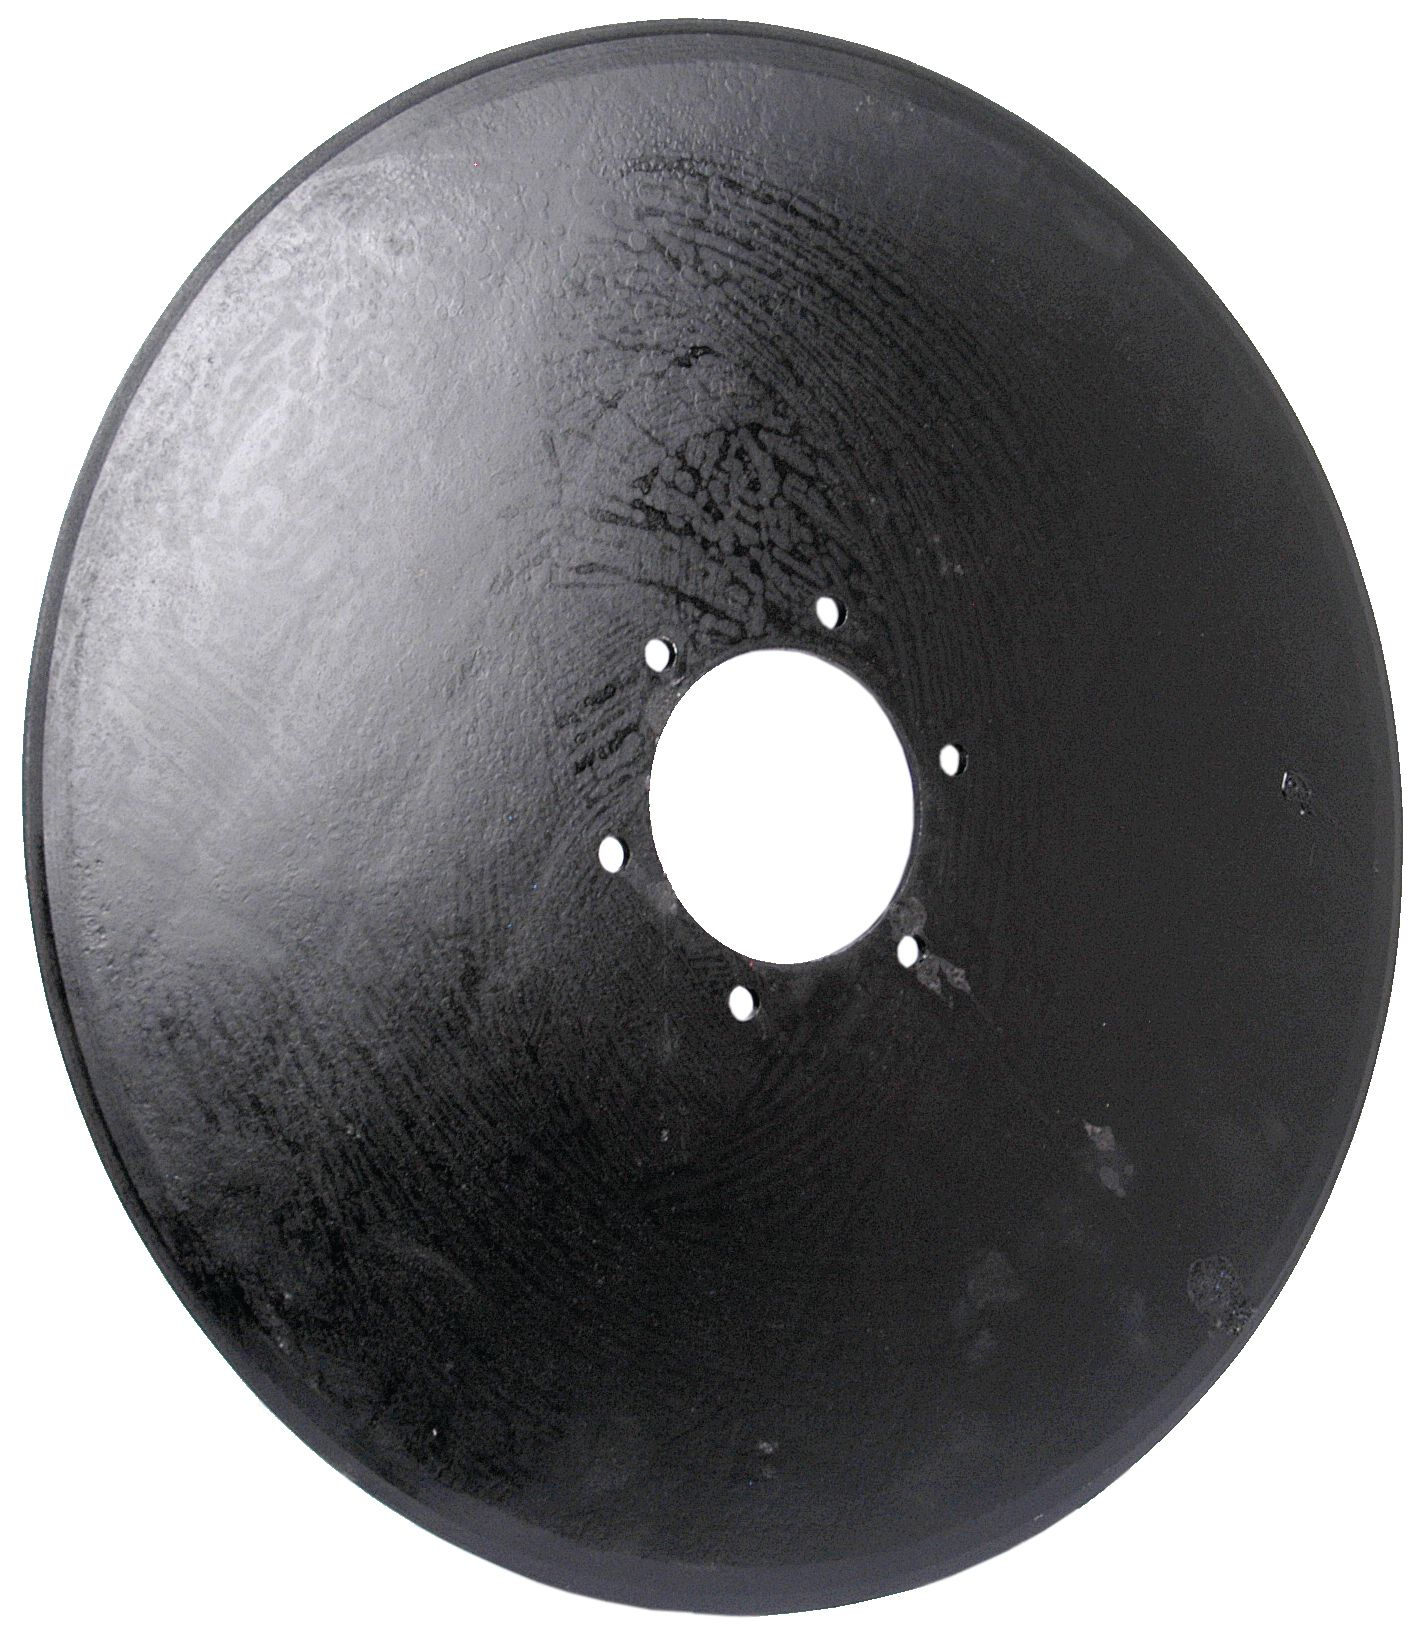 "DOWDESWELL DISC-DOWDESWELL Ï18"" 80MM BORE 77353"